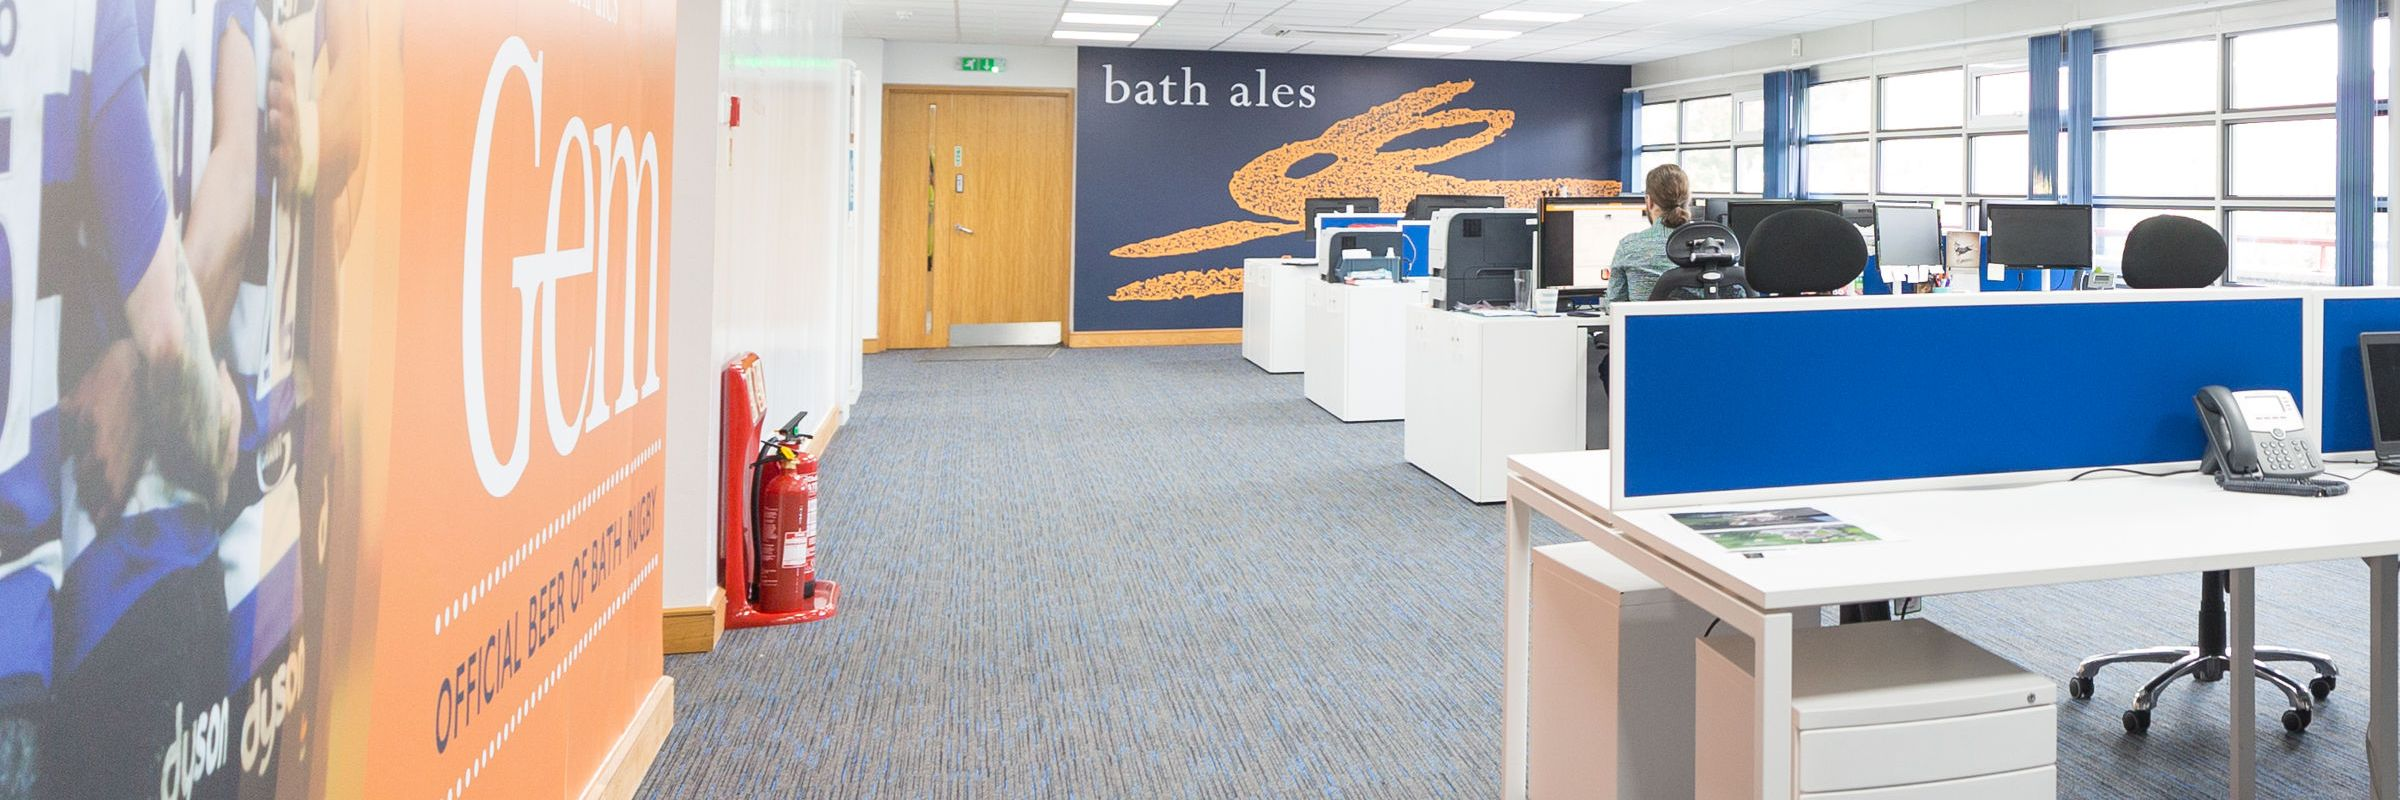 Inspiring productivity: office refurbishment for St Austell Brewery